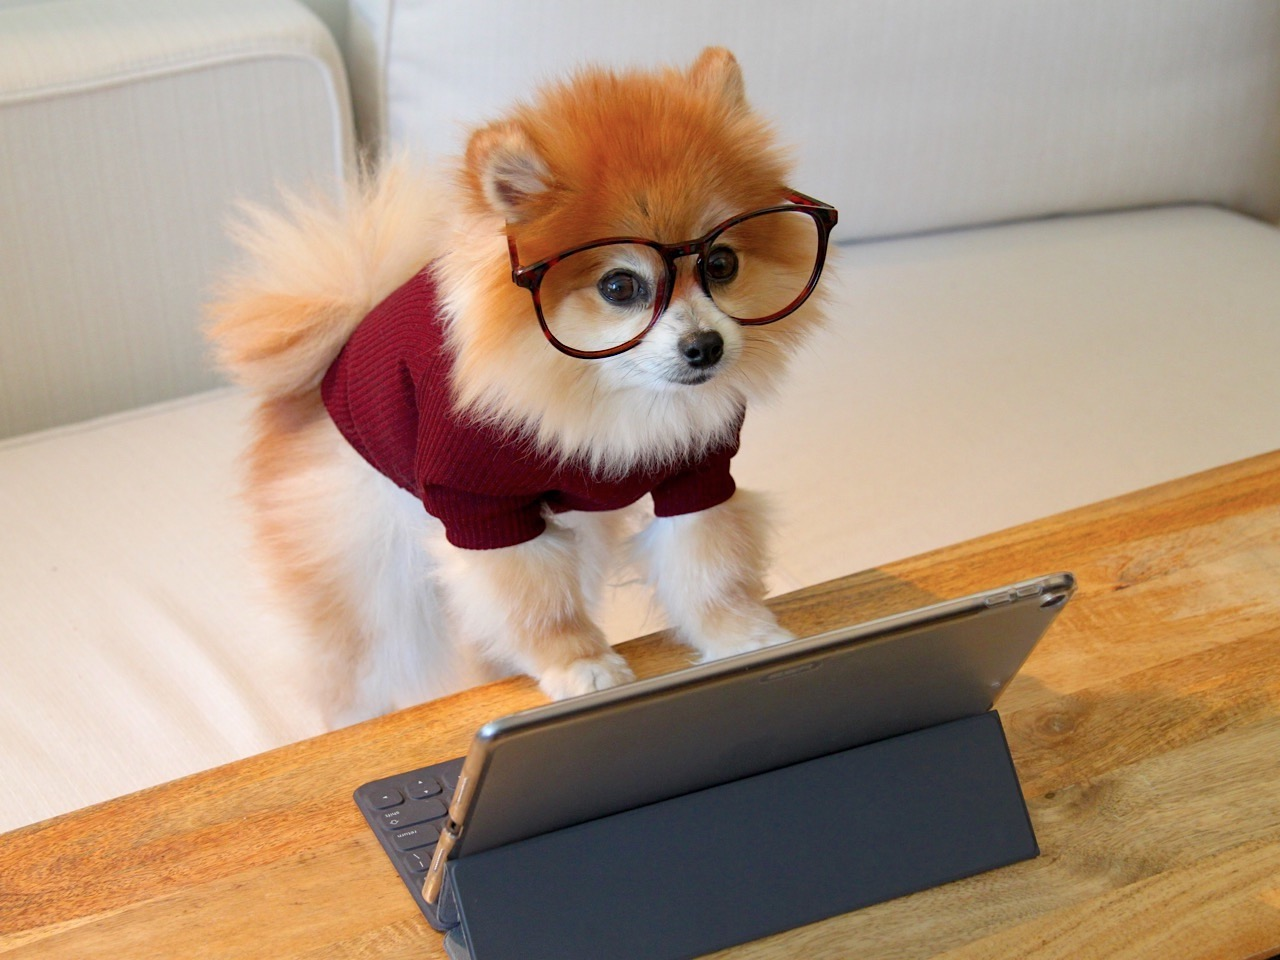 Little dog wearing red jumper and glasses playing at a screen